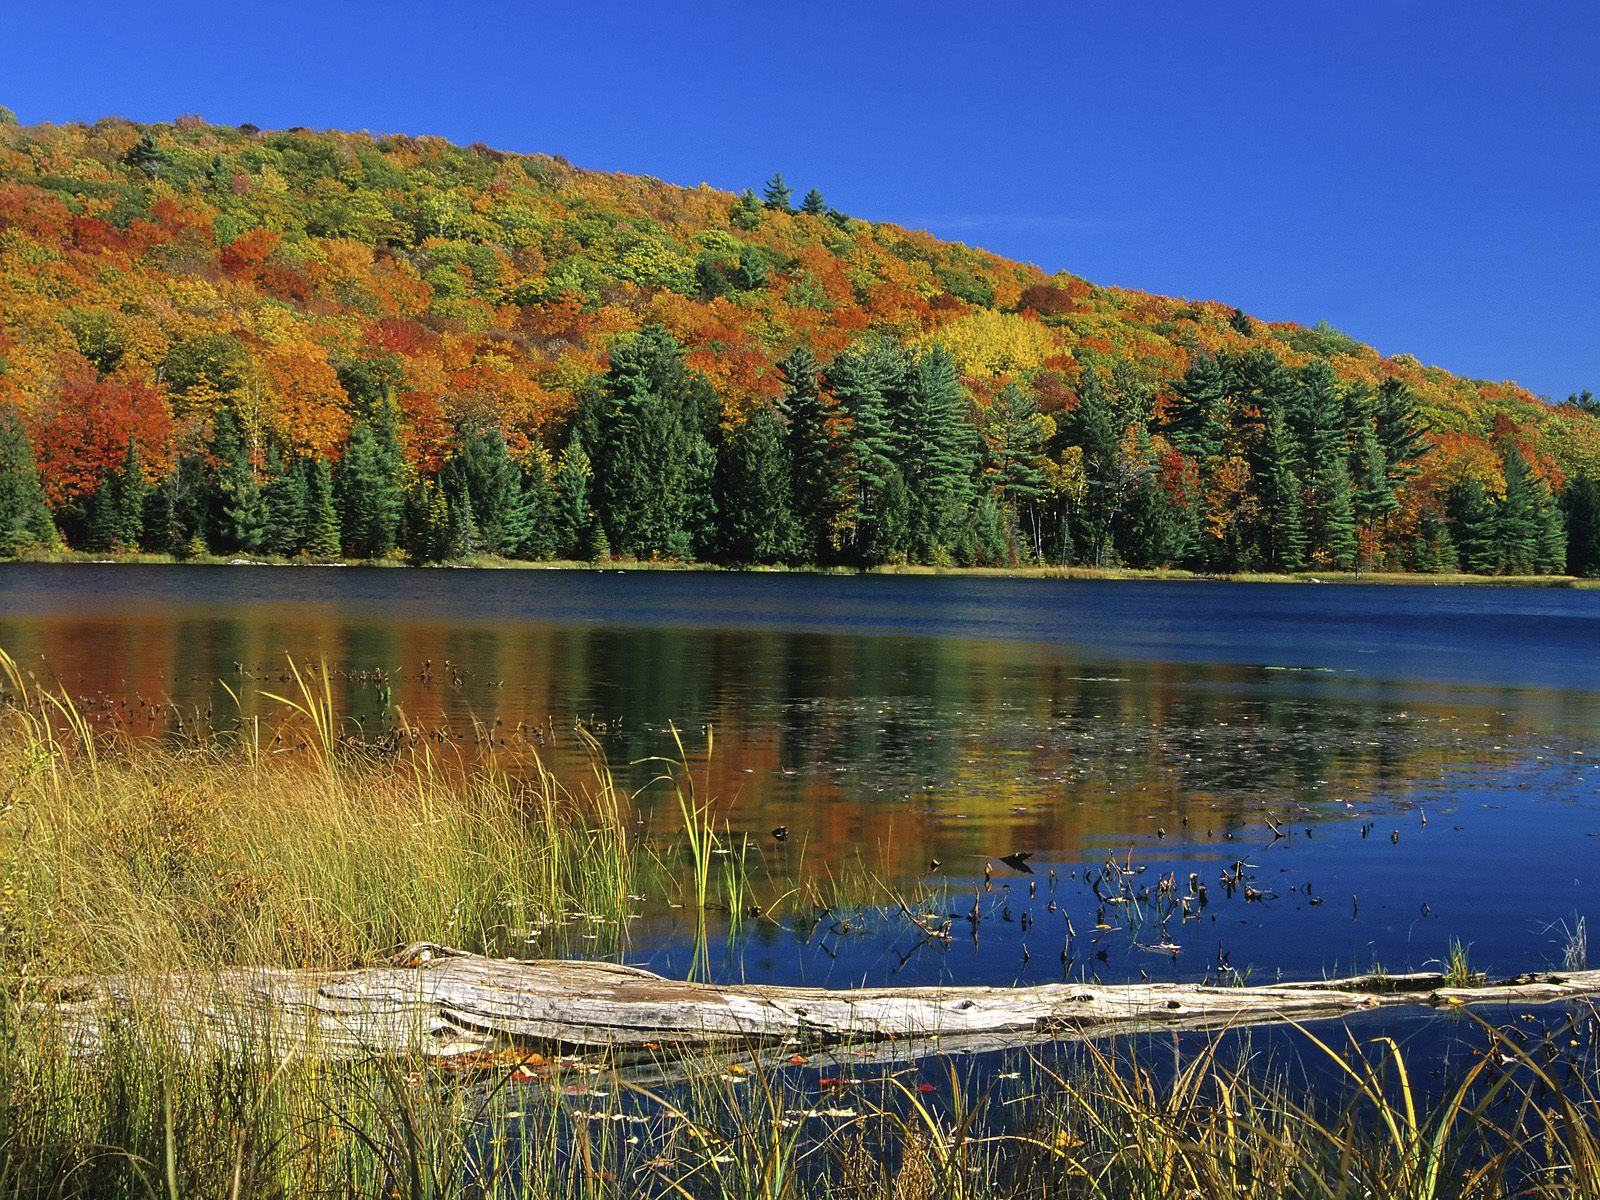 Wallpapers Backgrounds   Gatineau Park Quebec Canada Wallpapers 1600x1200